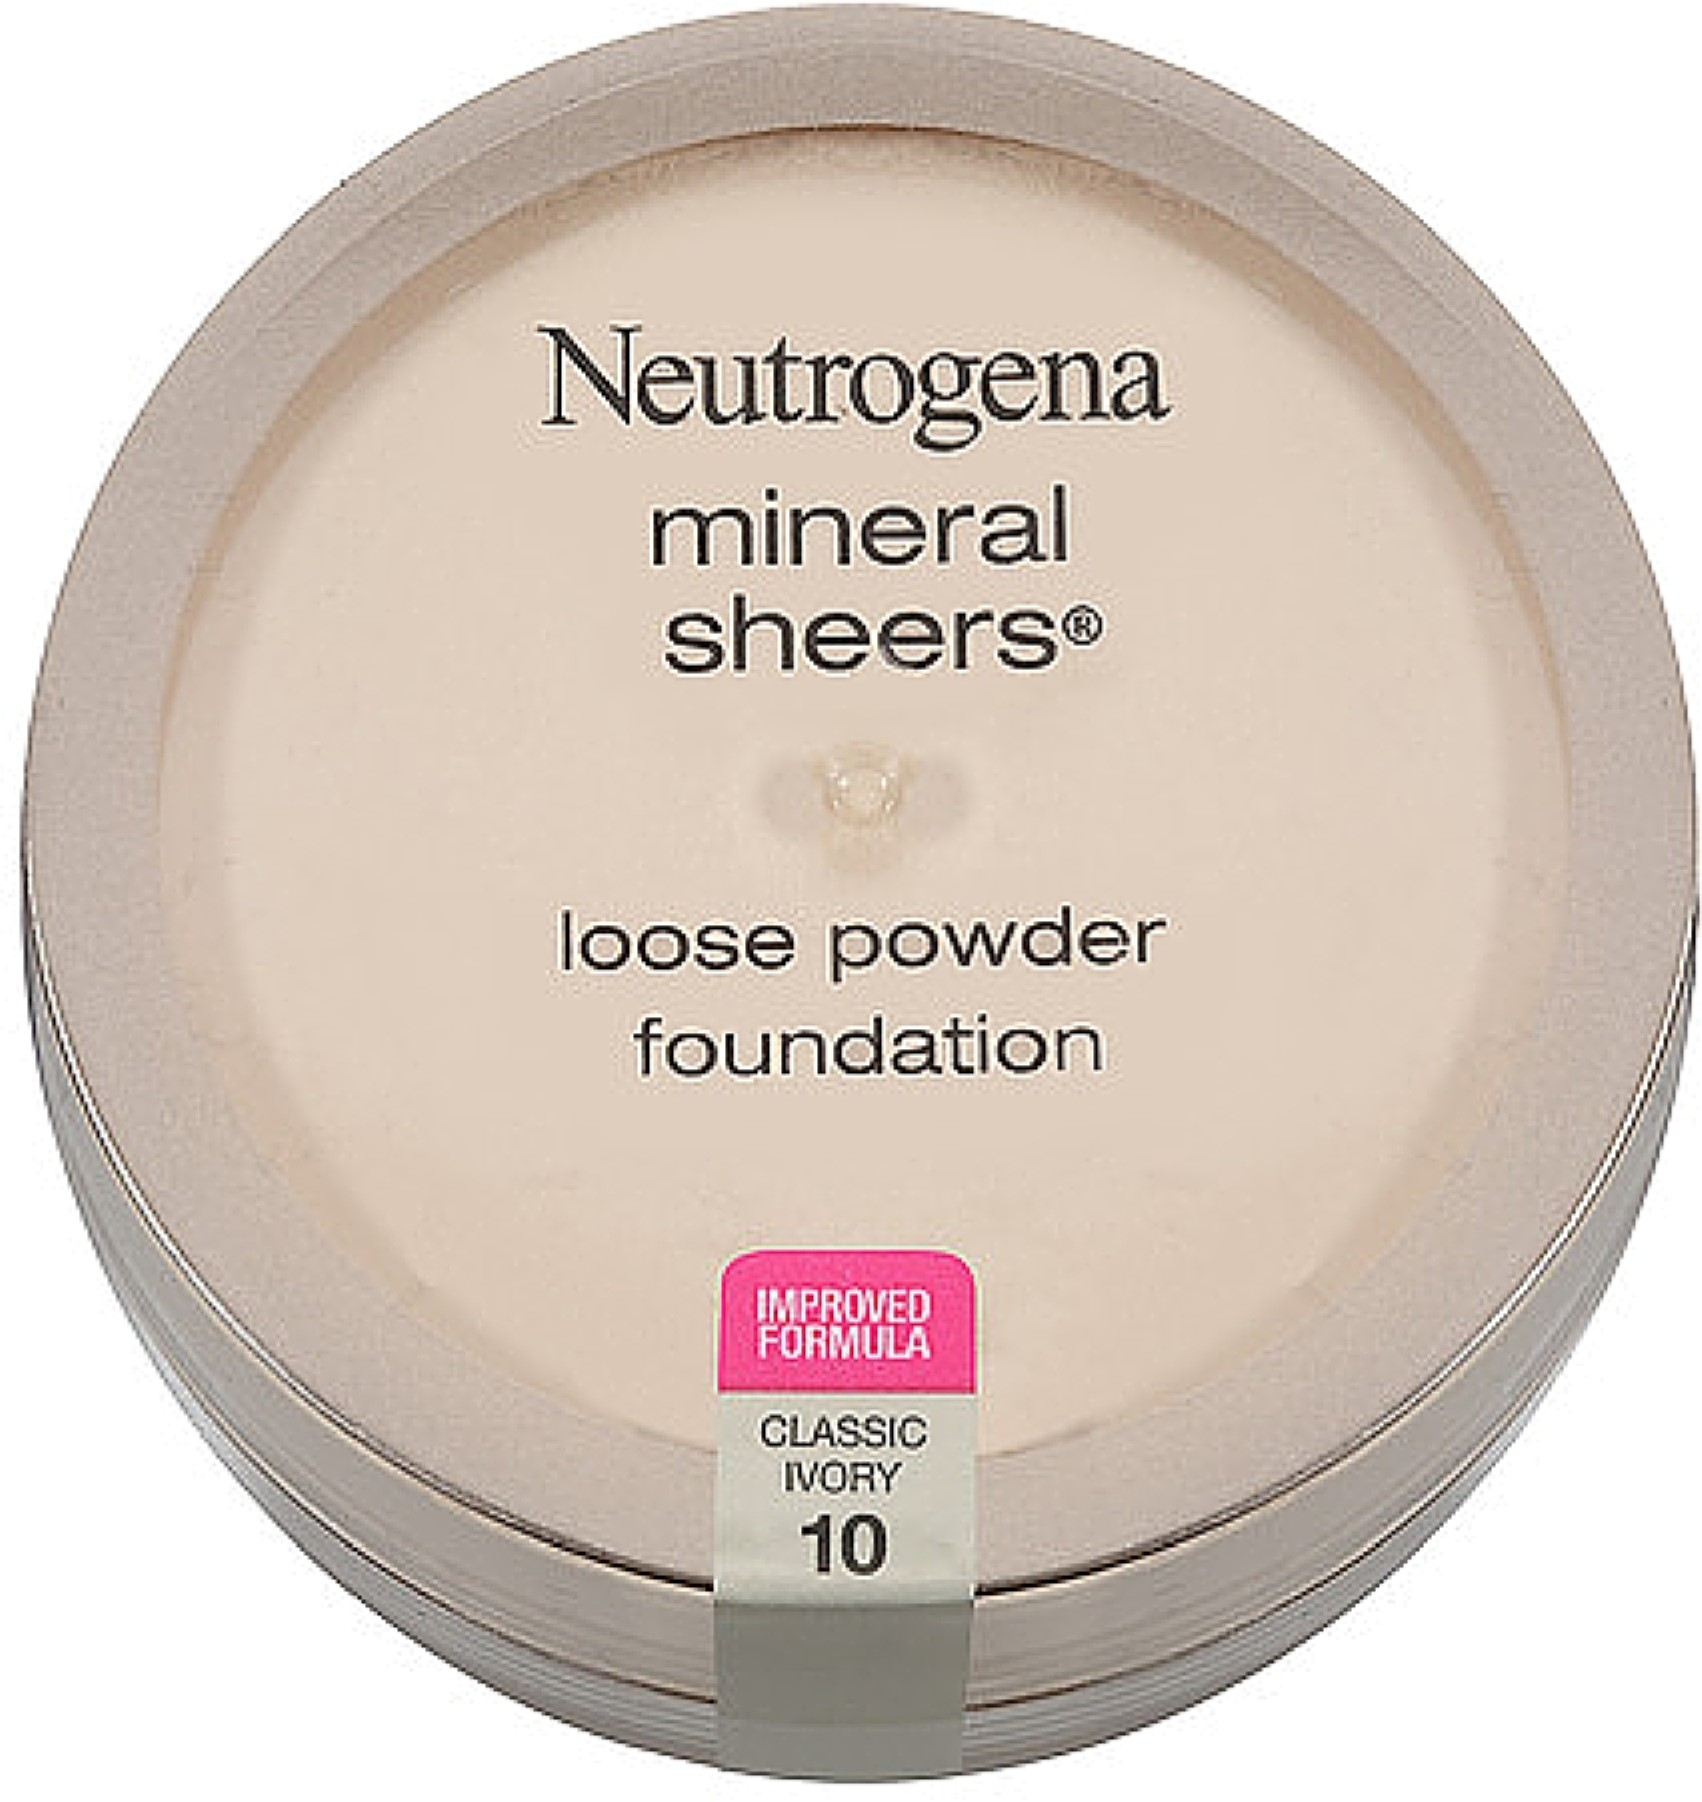 Neutrogena Mineral Sheers Loose Powder Foundation, Classic Ivory [10] 0.19 oz